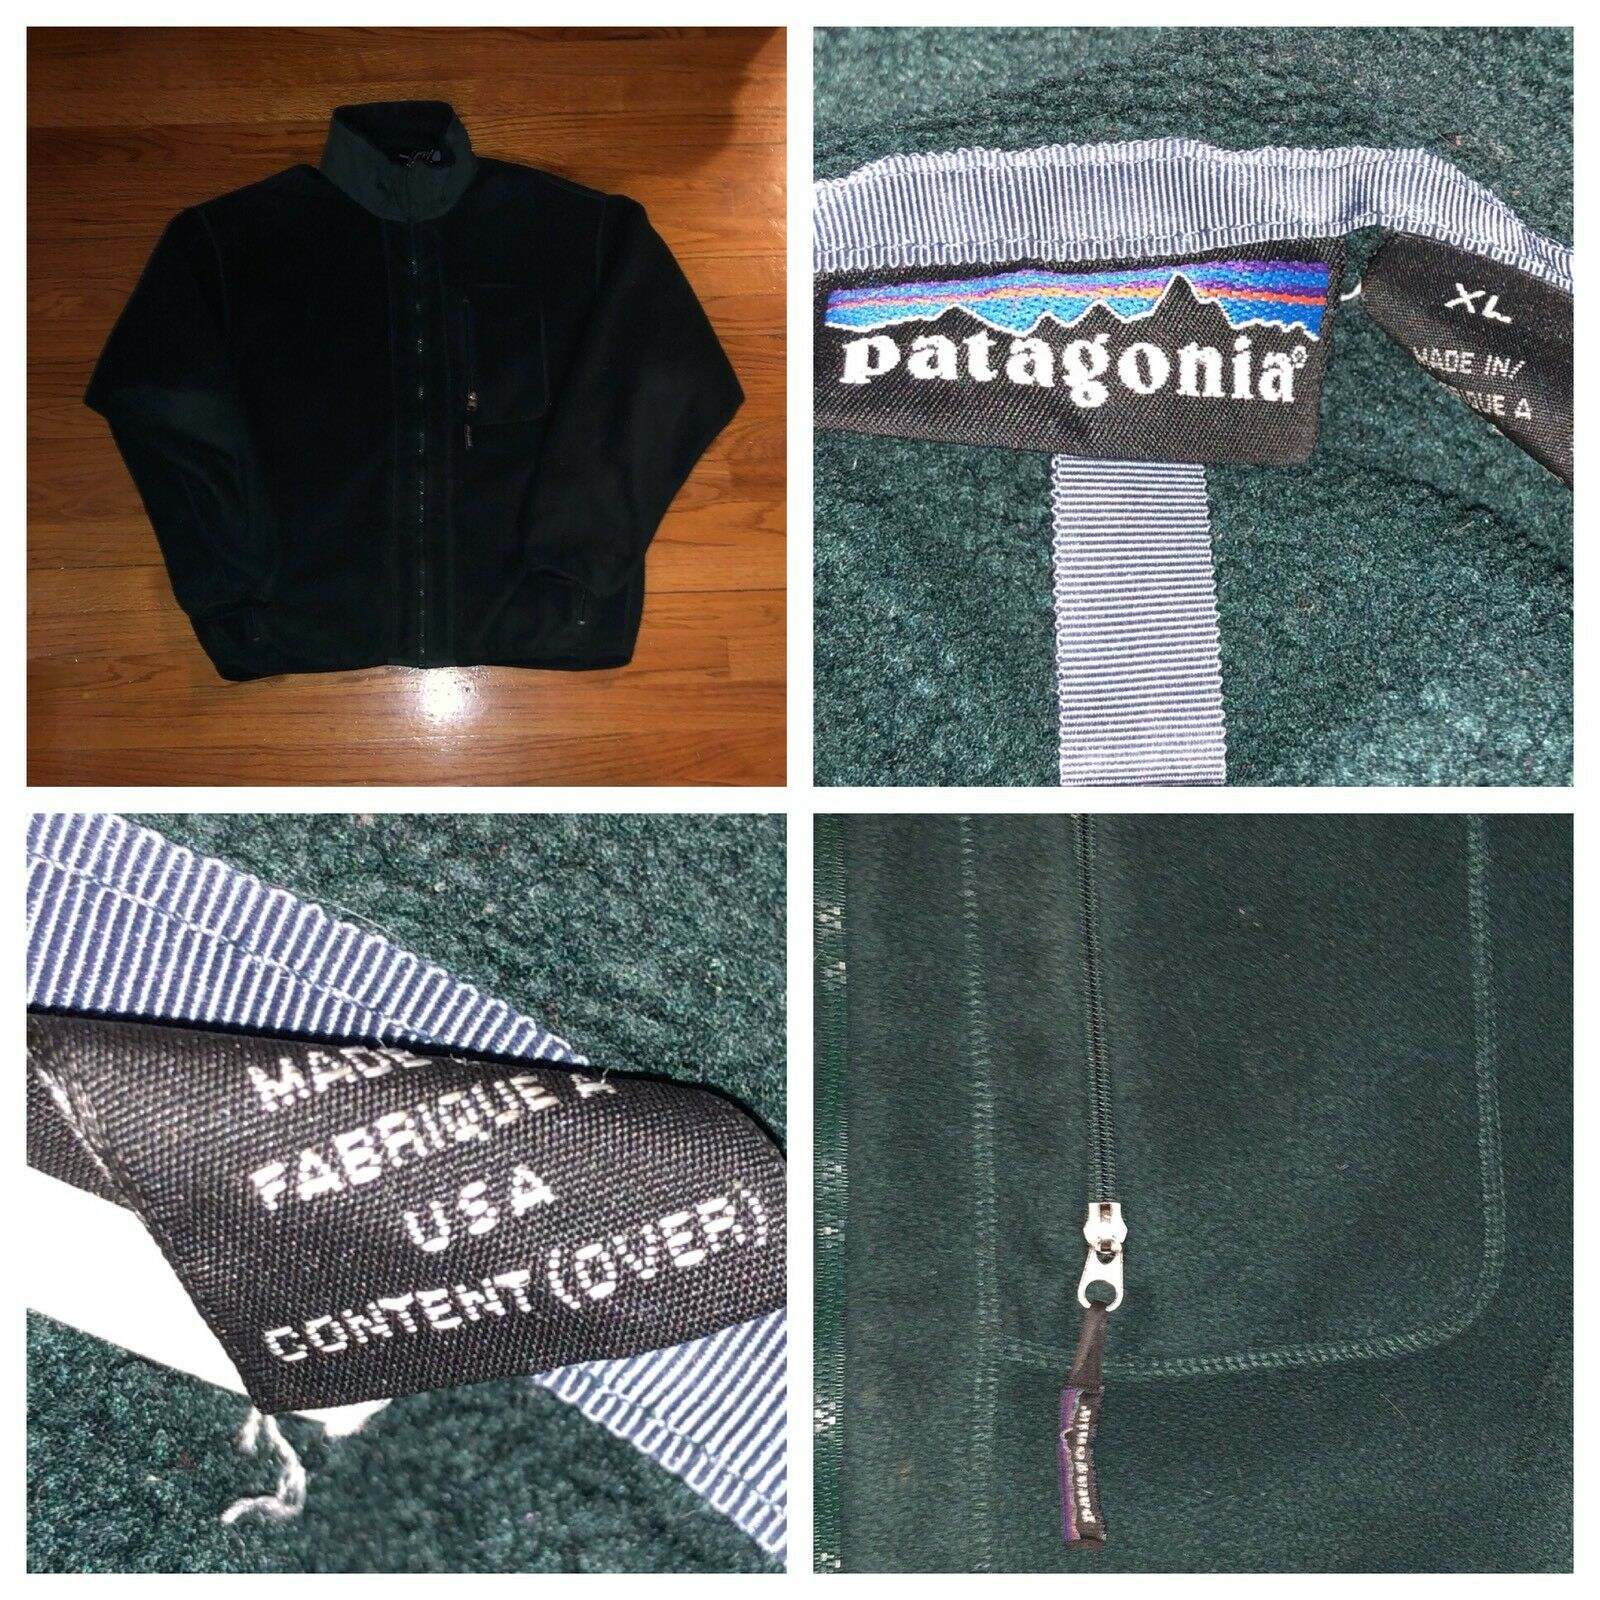 Vtg Patagonia Men's Full Zip Grün Fleece Sweater Größe XL Made In The USA